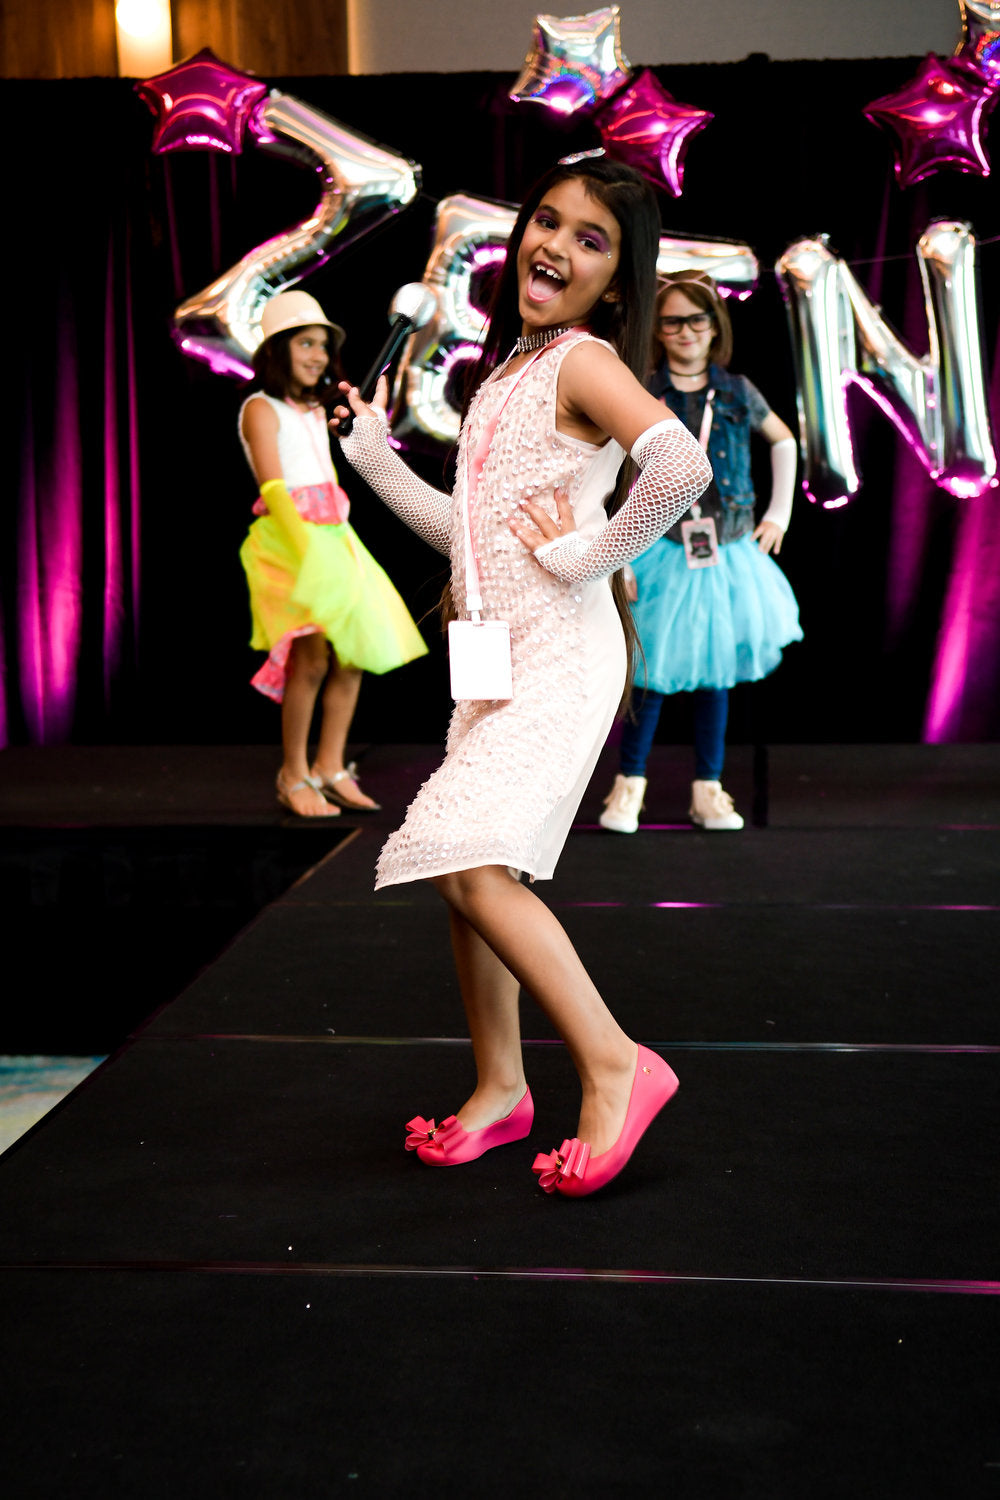 Birthday girl posing on runway for birthday fashion show